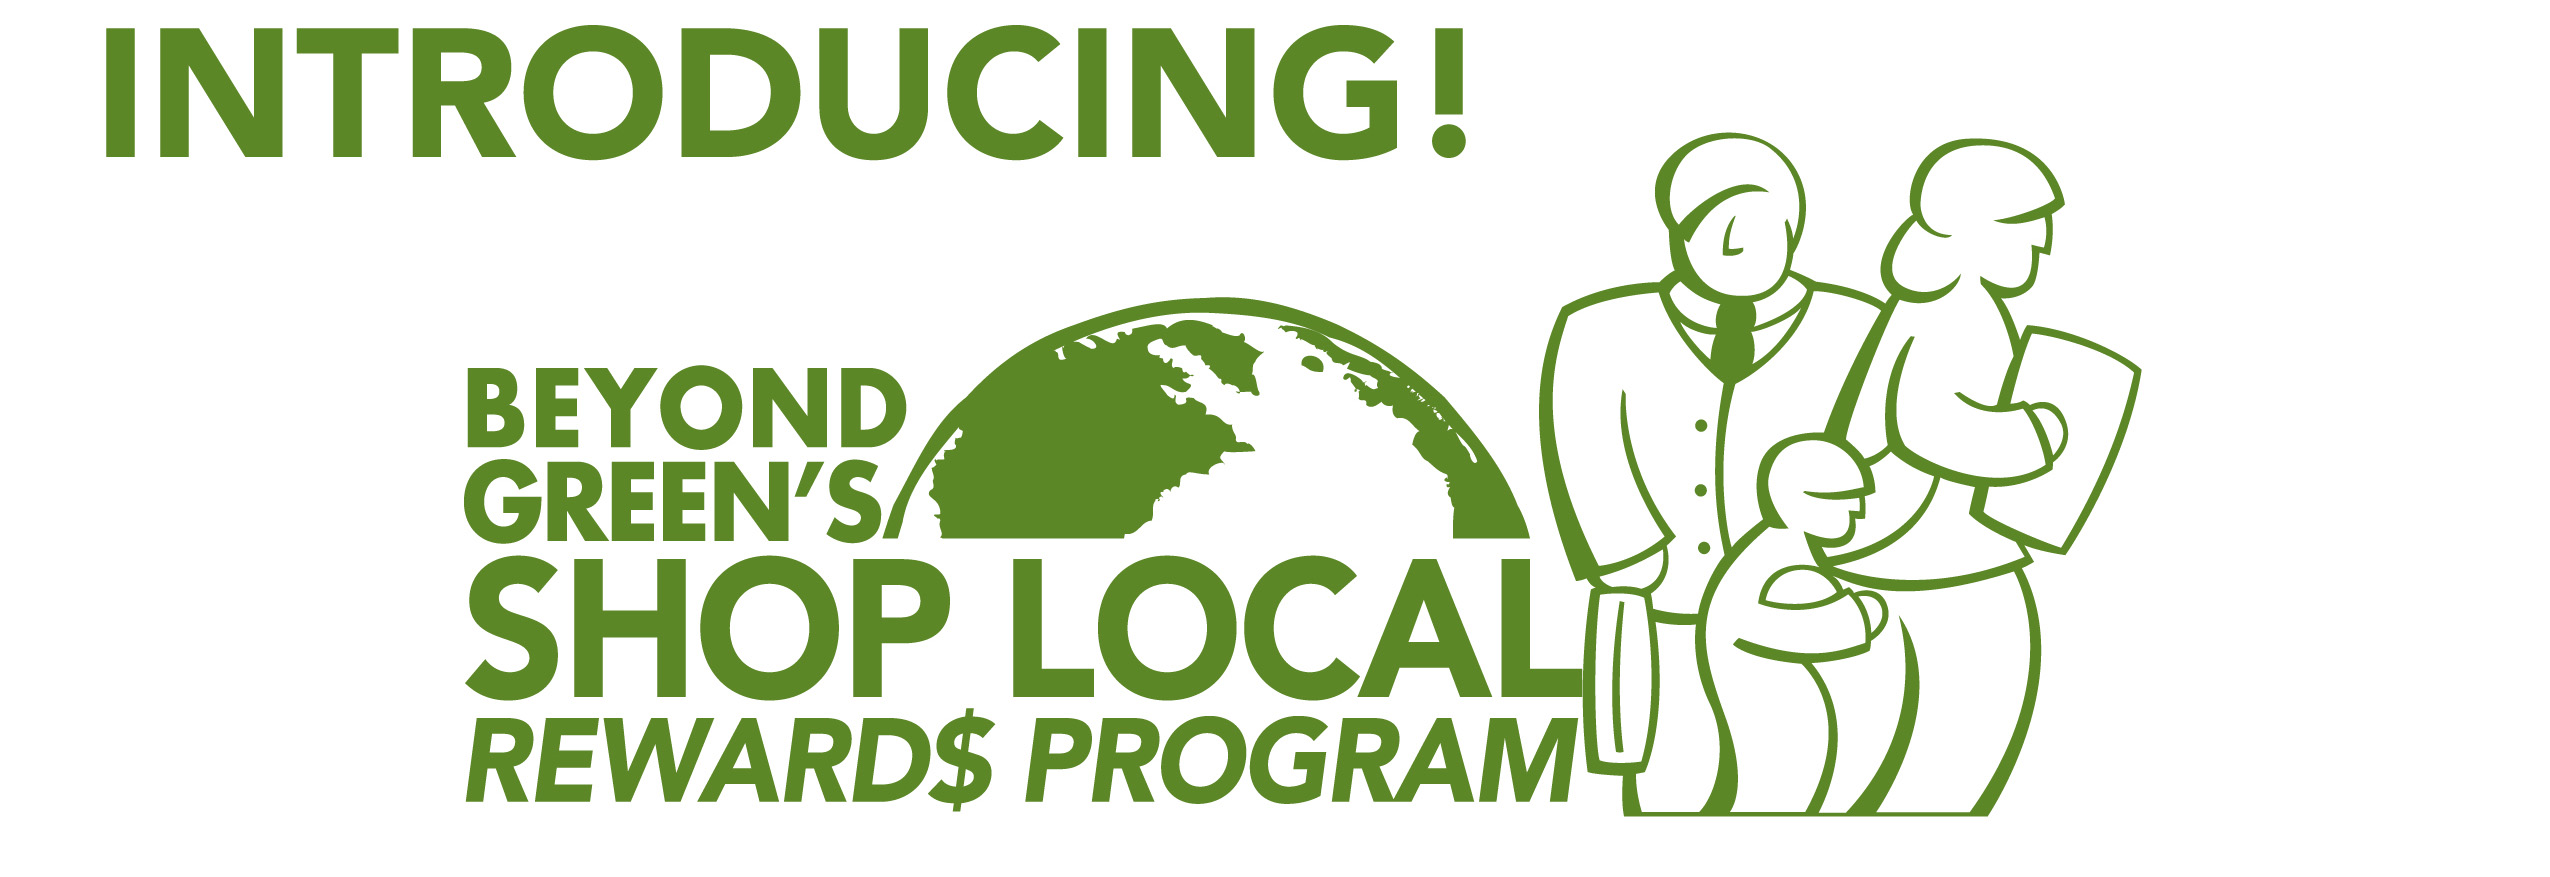 Introducing Beyond Green's Shop Local Rewards Program